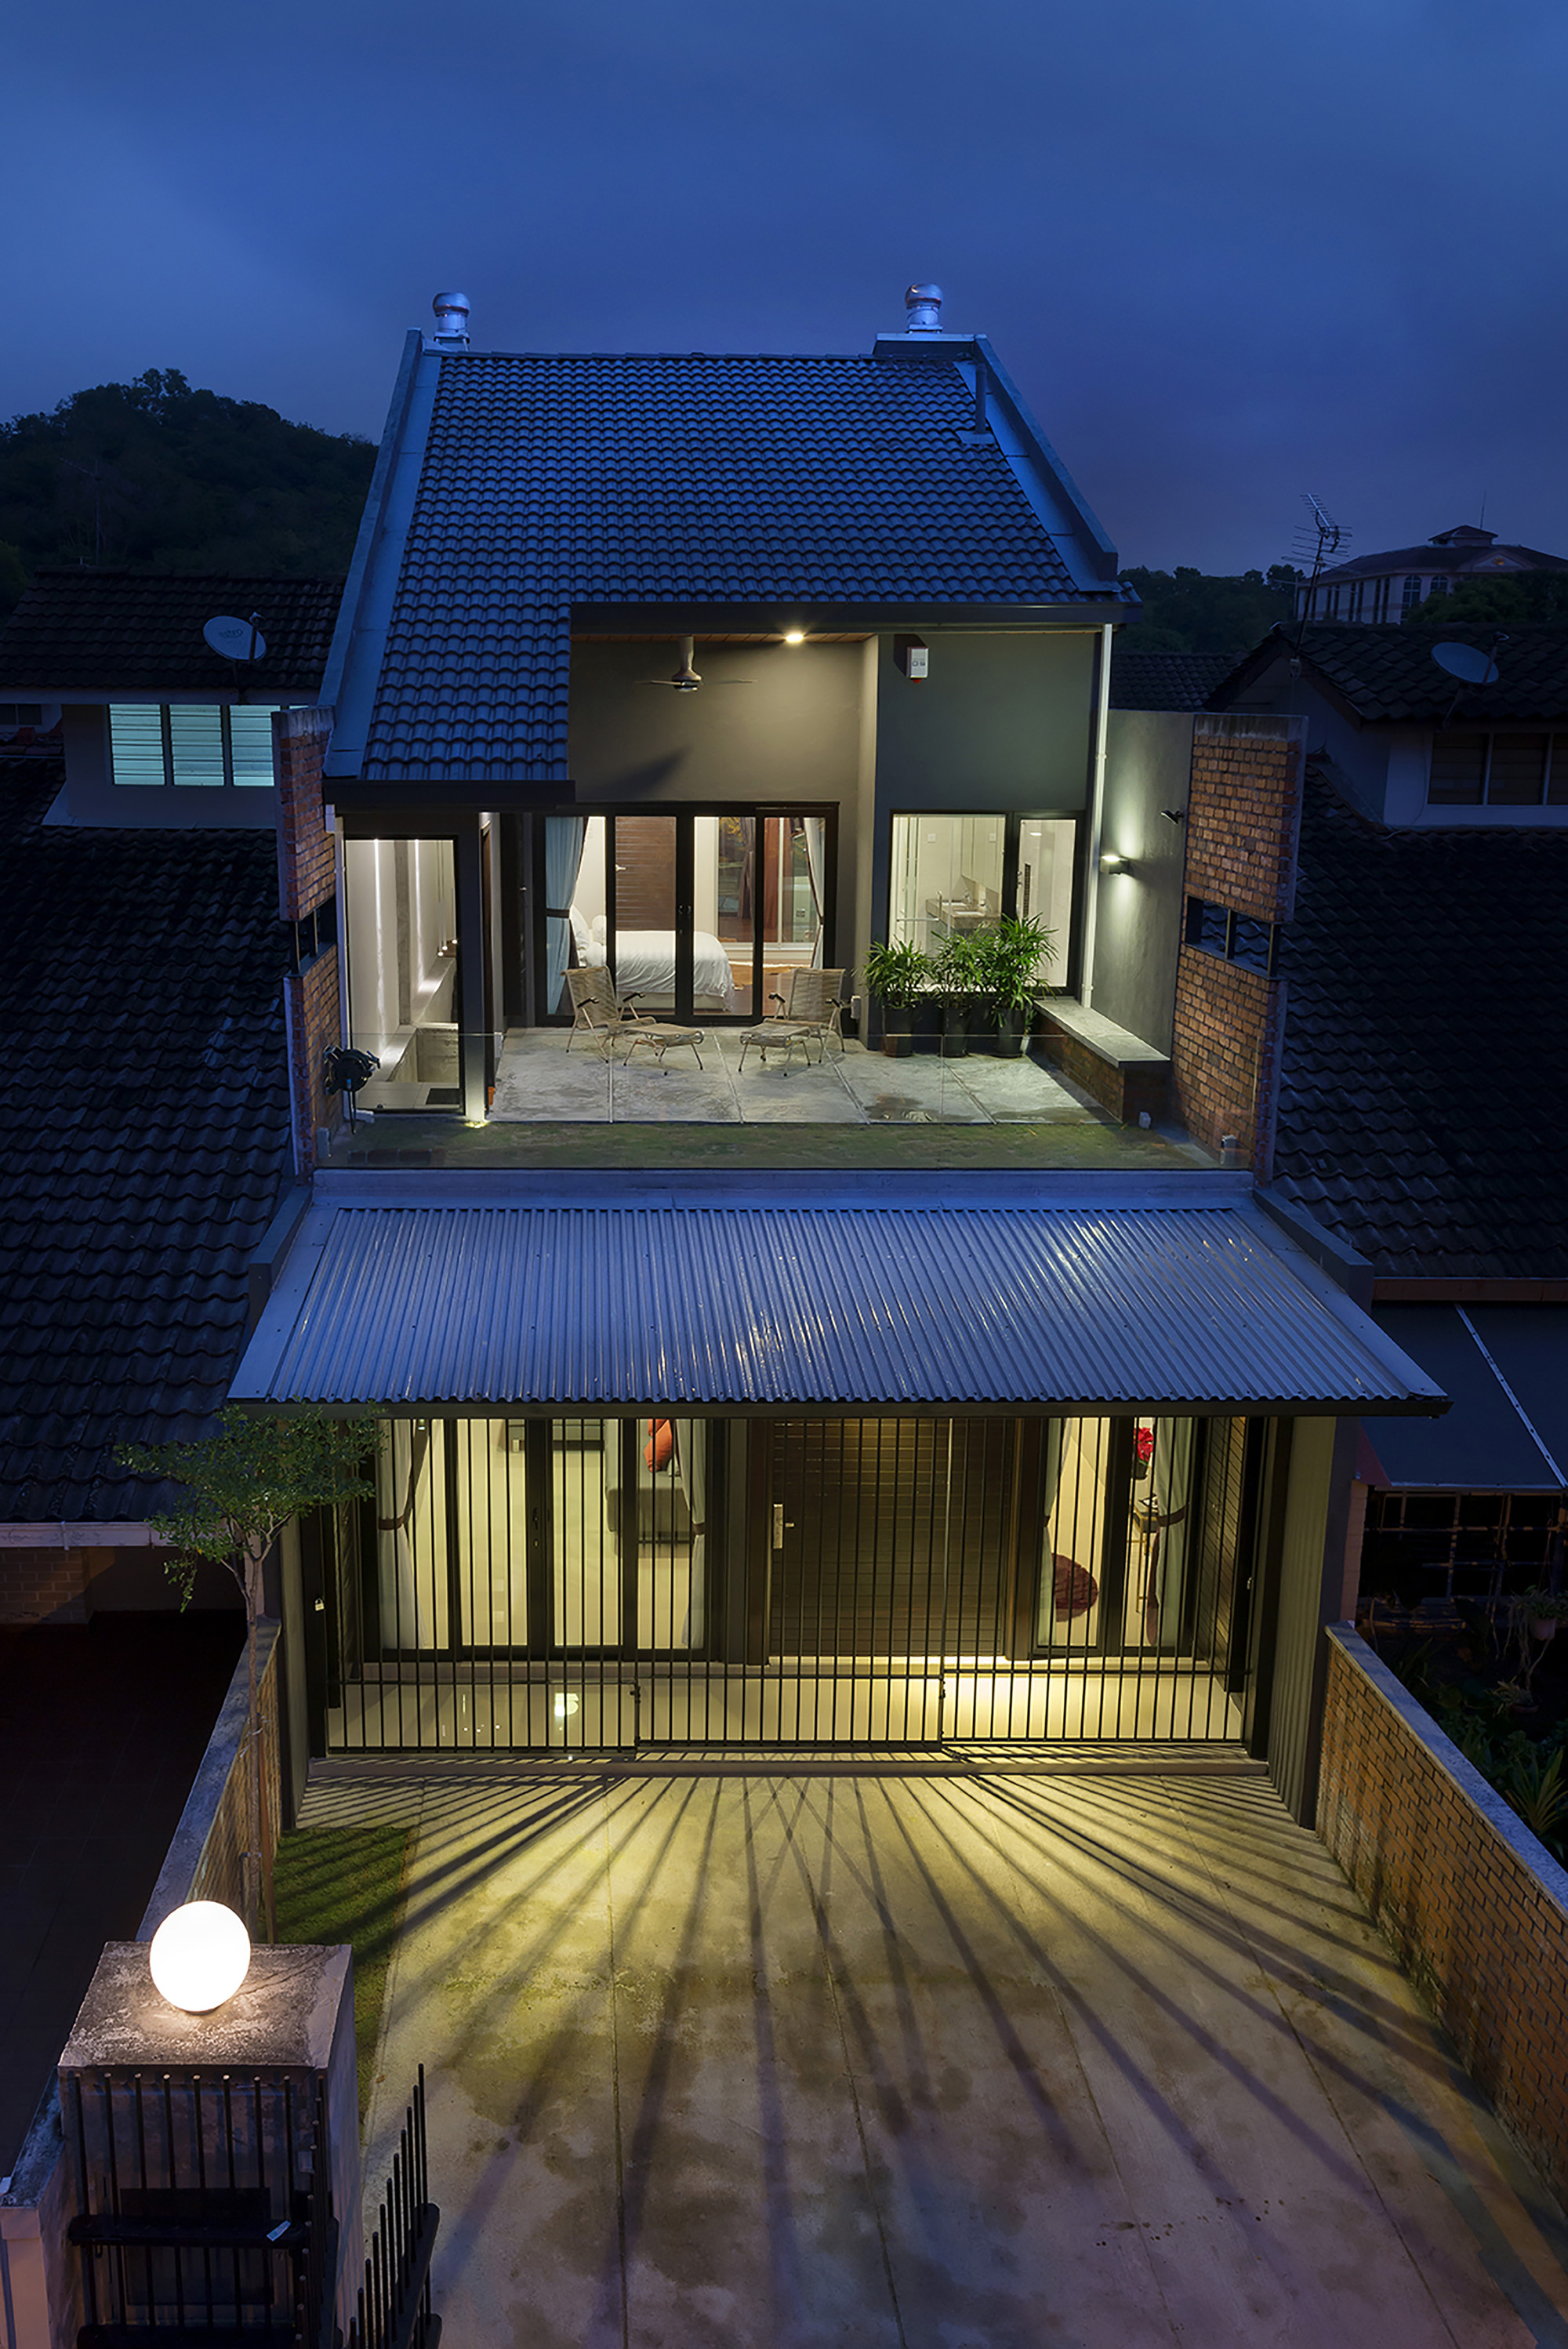 Gallery of 23 terrace drtan lm architect 7 for Terrace house 1